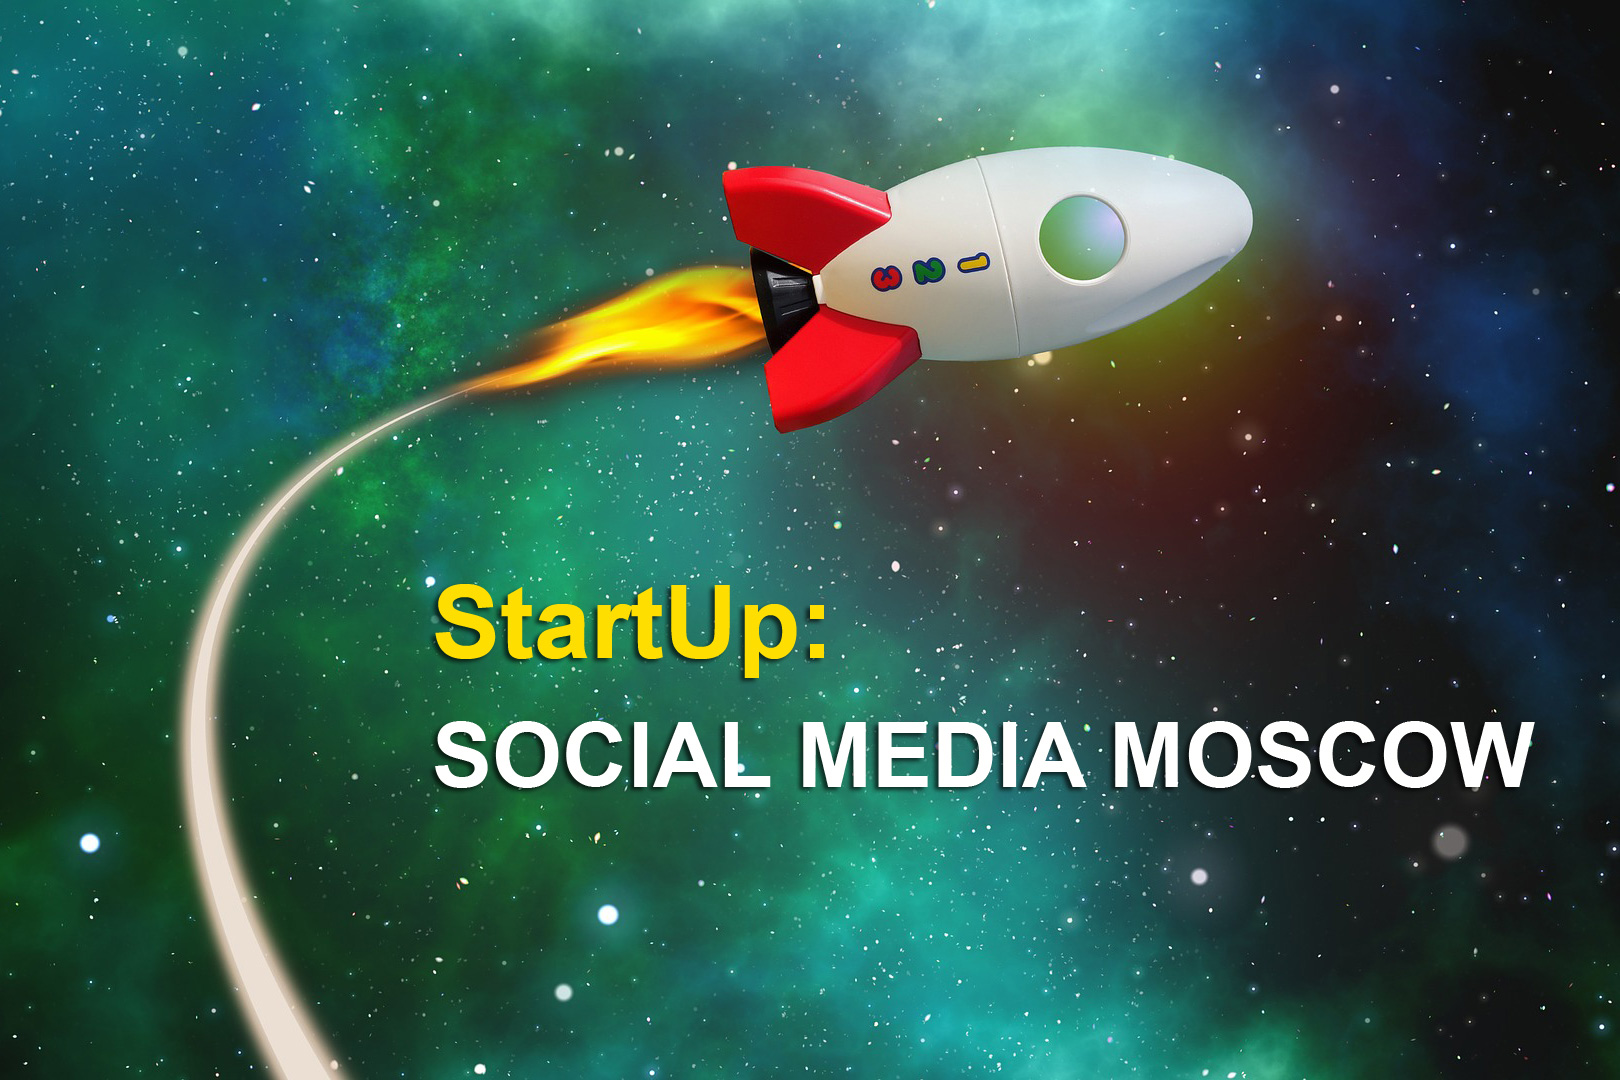 StartUp: Social Media Moscow